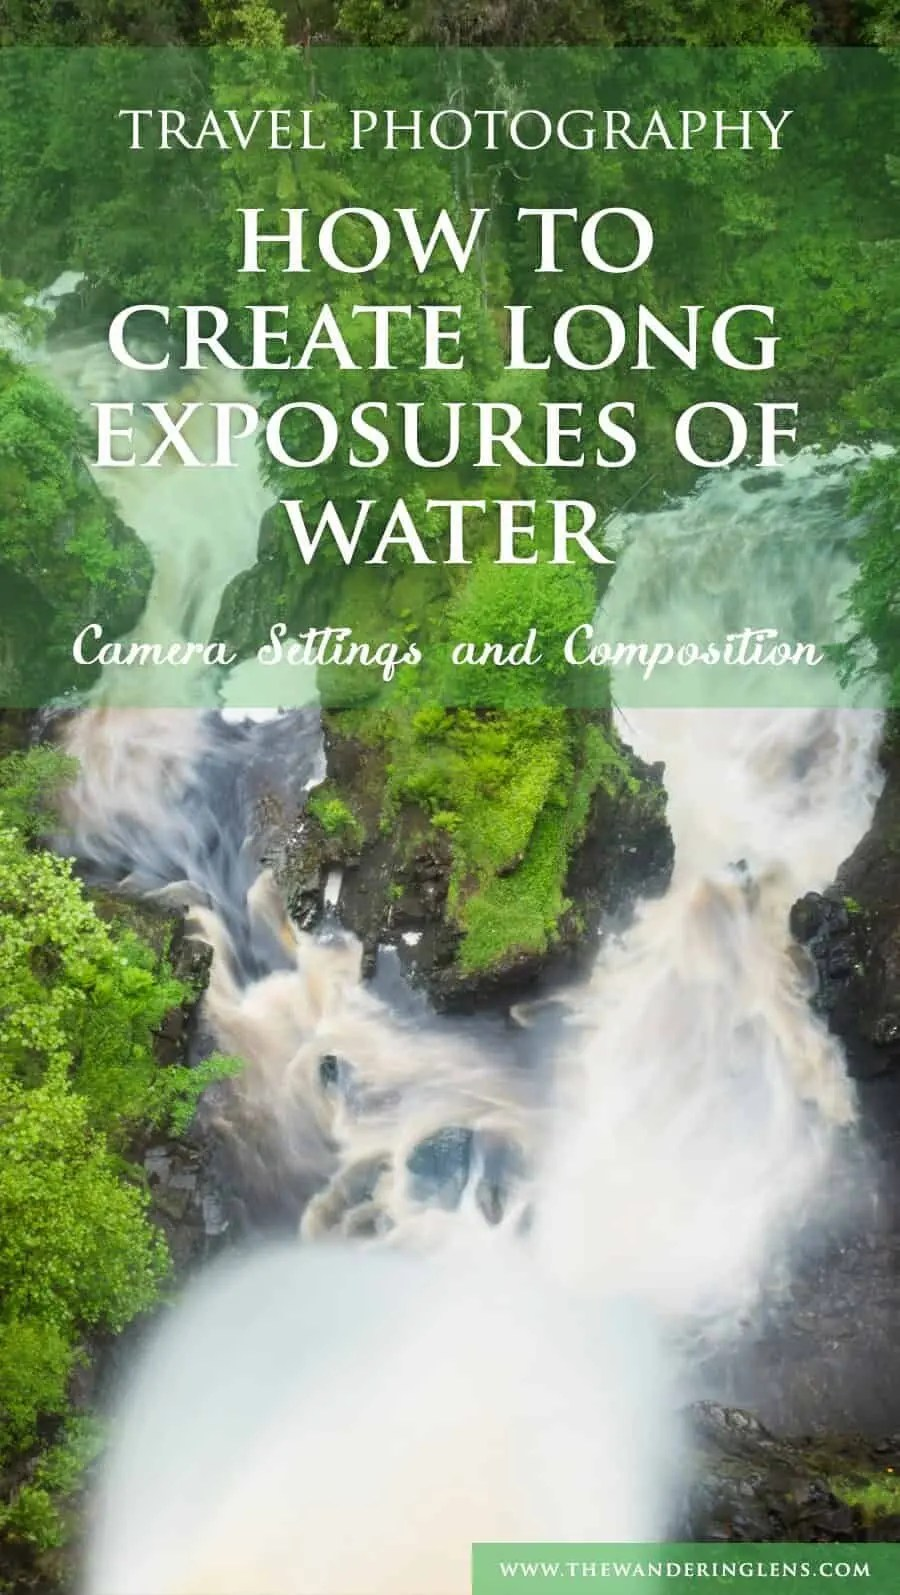 How to take long exposures of water and waterfalls by The Wandering Lens